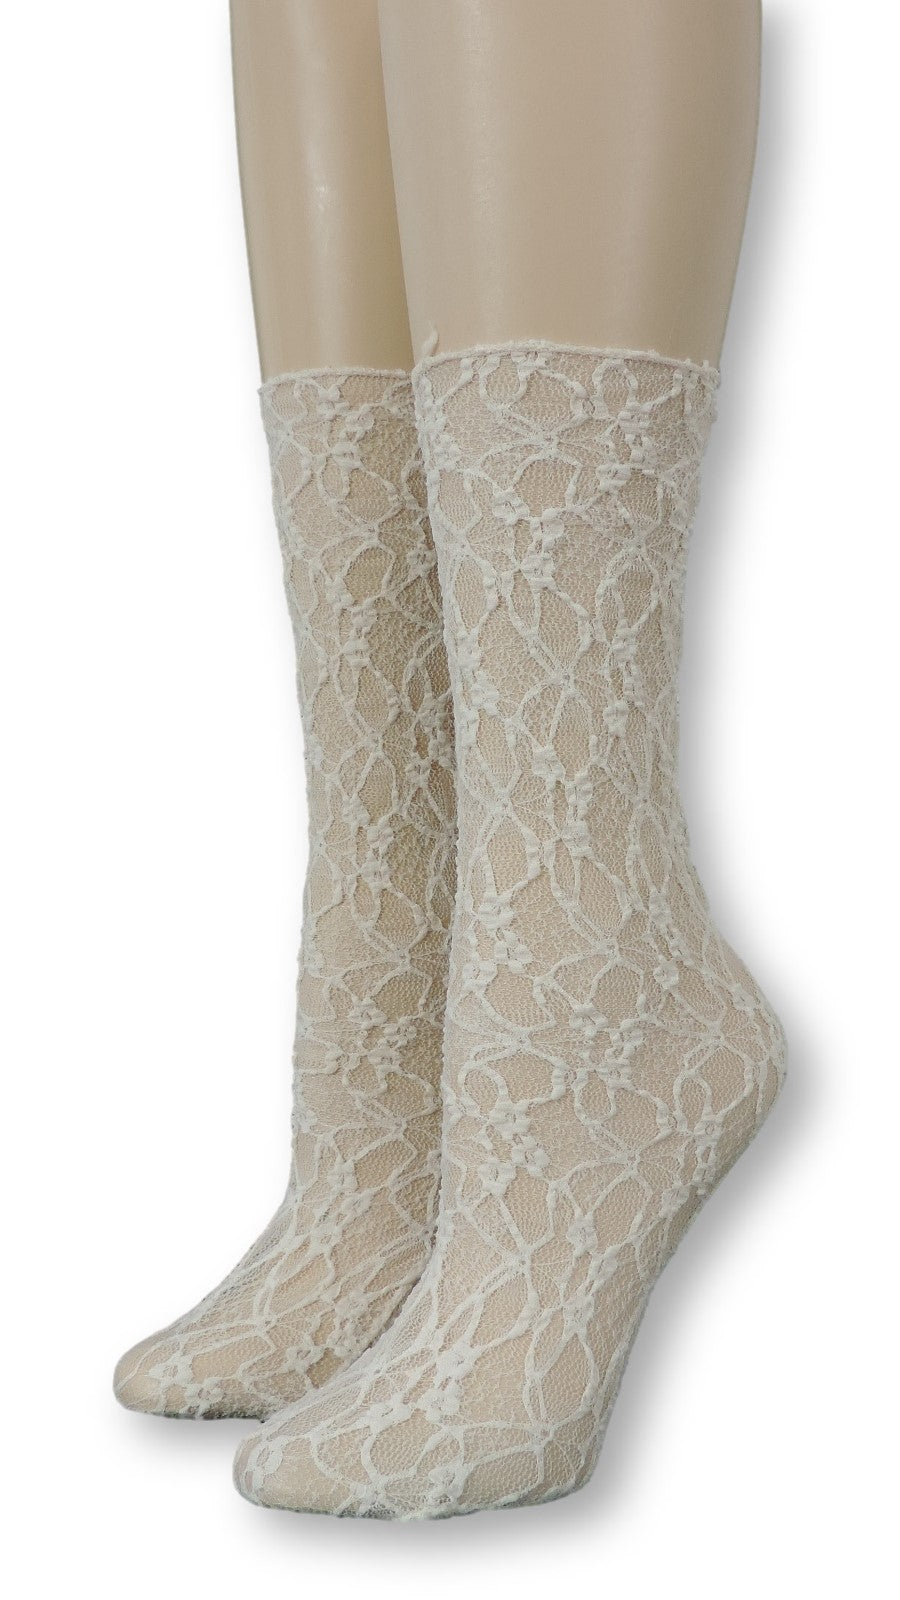 Cream Mesh Socks - Global Trendz Fashion®